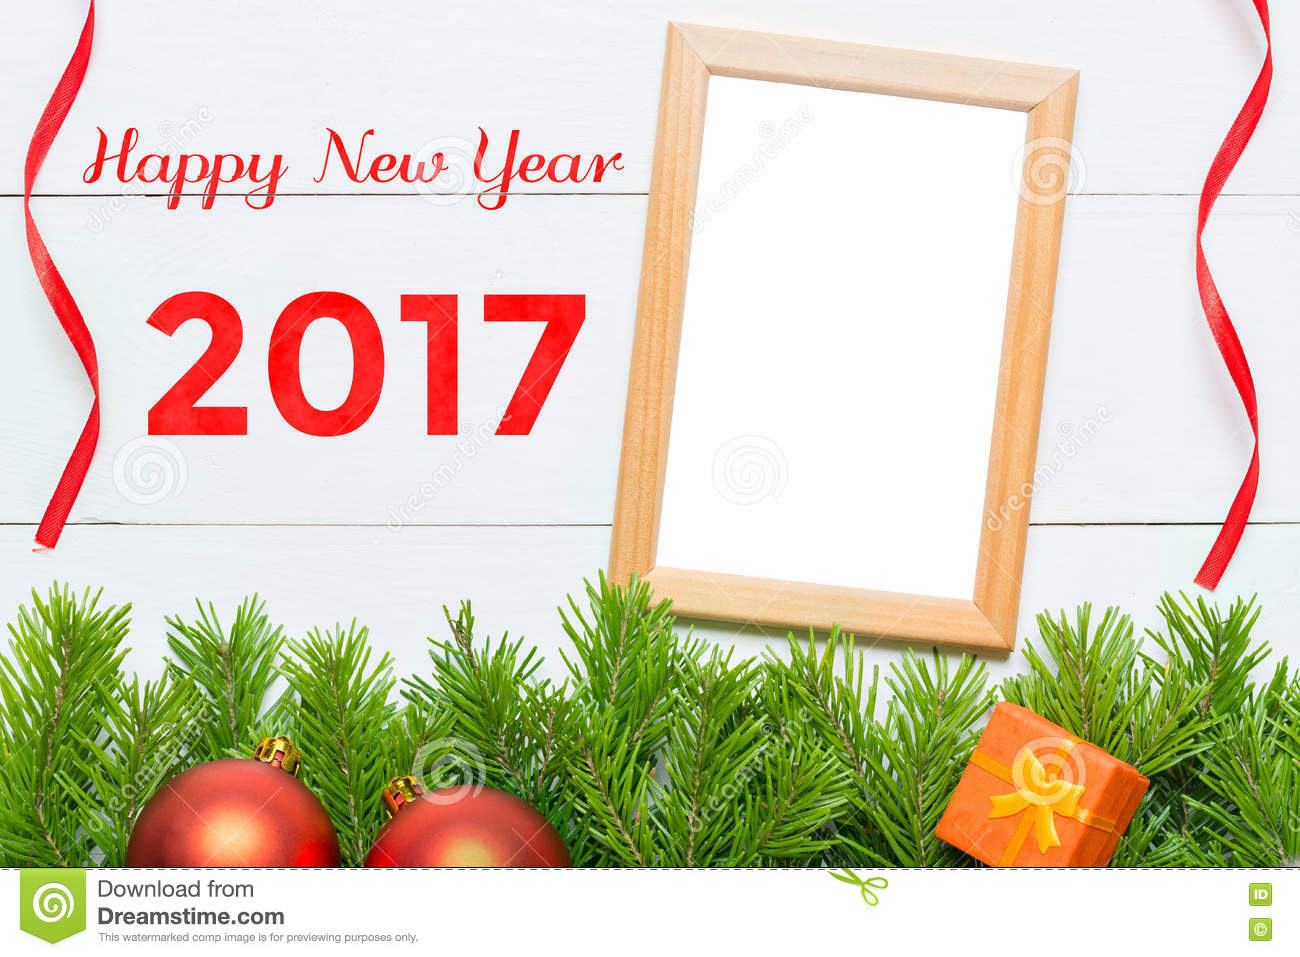 Happy new year 2017 christmas decoration and photo frame stock image image 77380011 for Photo decoration